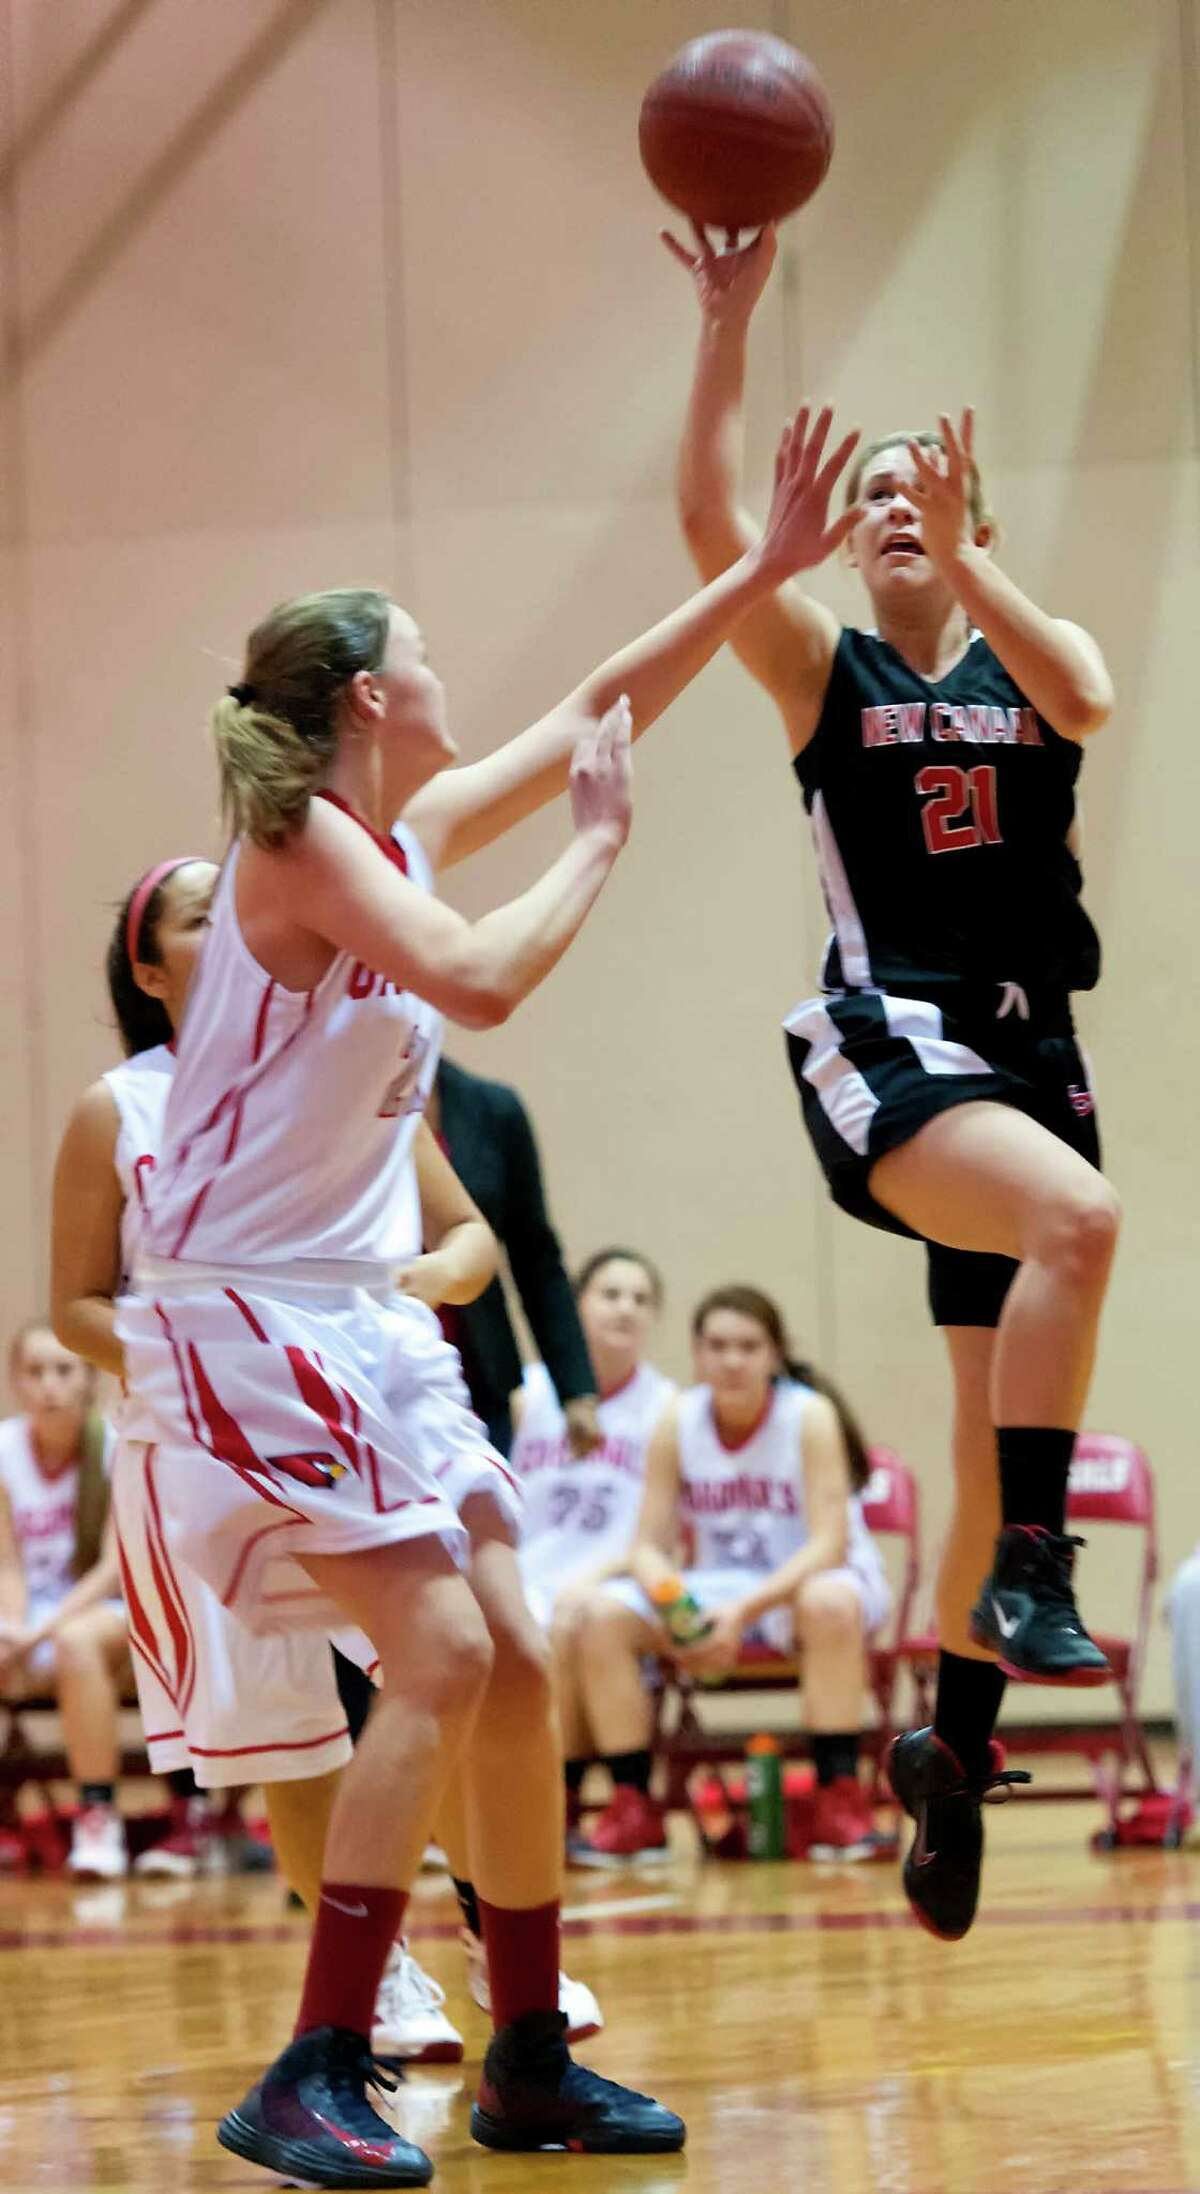 New Canaan high school's Brianna McEwen goes up for a shot in a girls basketball game against Greenwich high school played at Greenwich high school, Greenwich, CT on Wednesday December 5th, 2012. At left is Greenwich high school's Abbie Wollf .